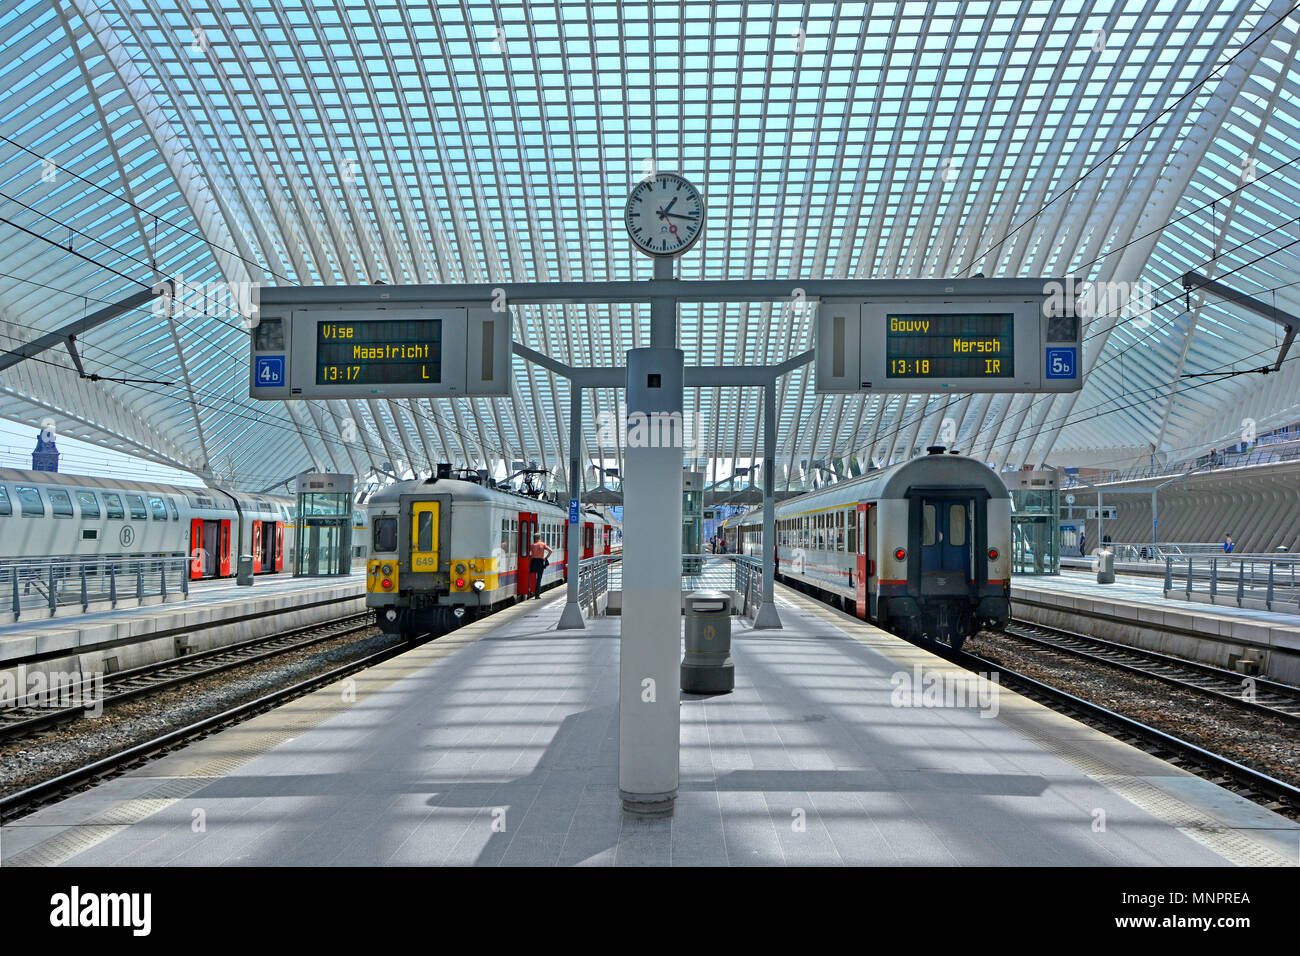 Symmetrical architecture balance of modern public transport Liege Belgium EU train station railway platform clock & large glass roof covering trains - Stock Image